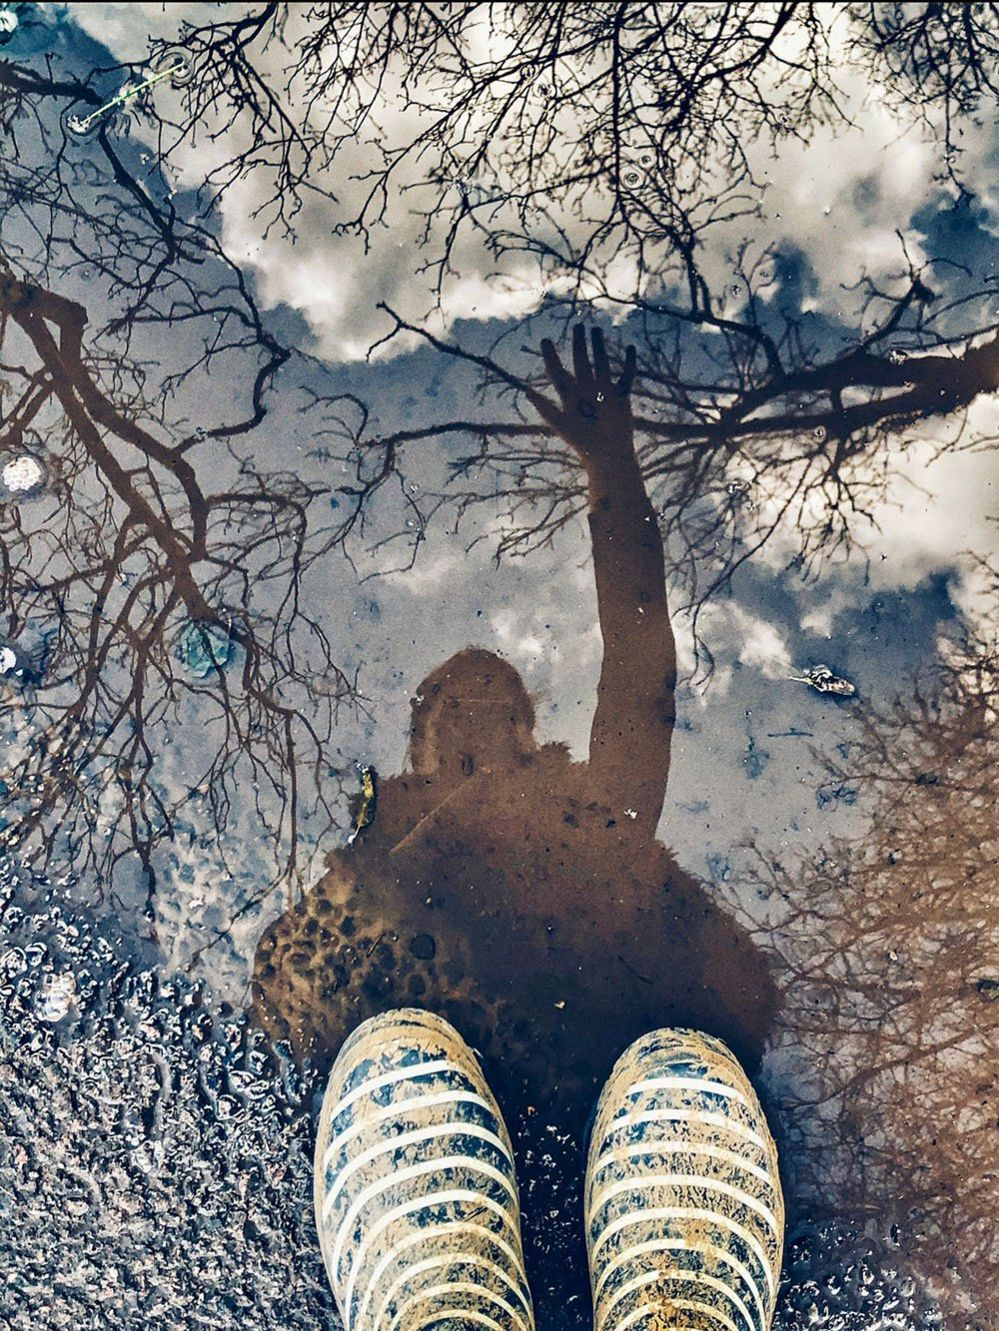 Boots and a puddle